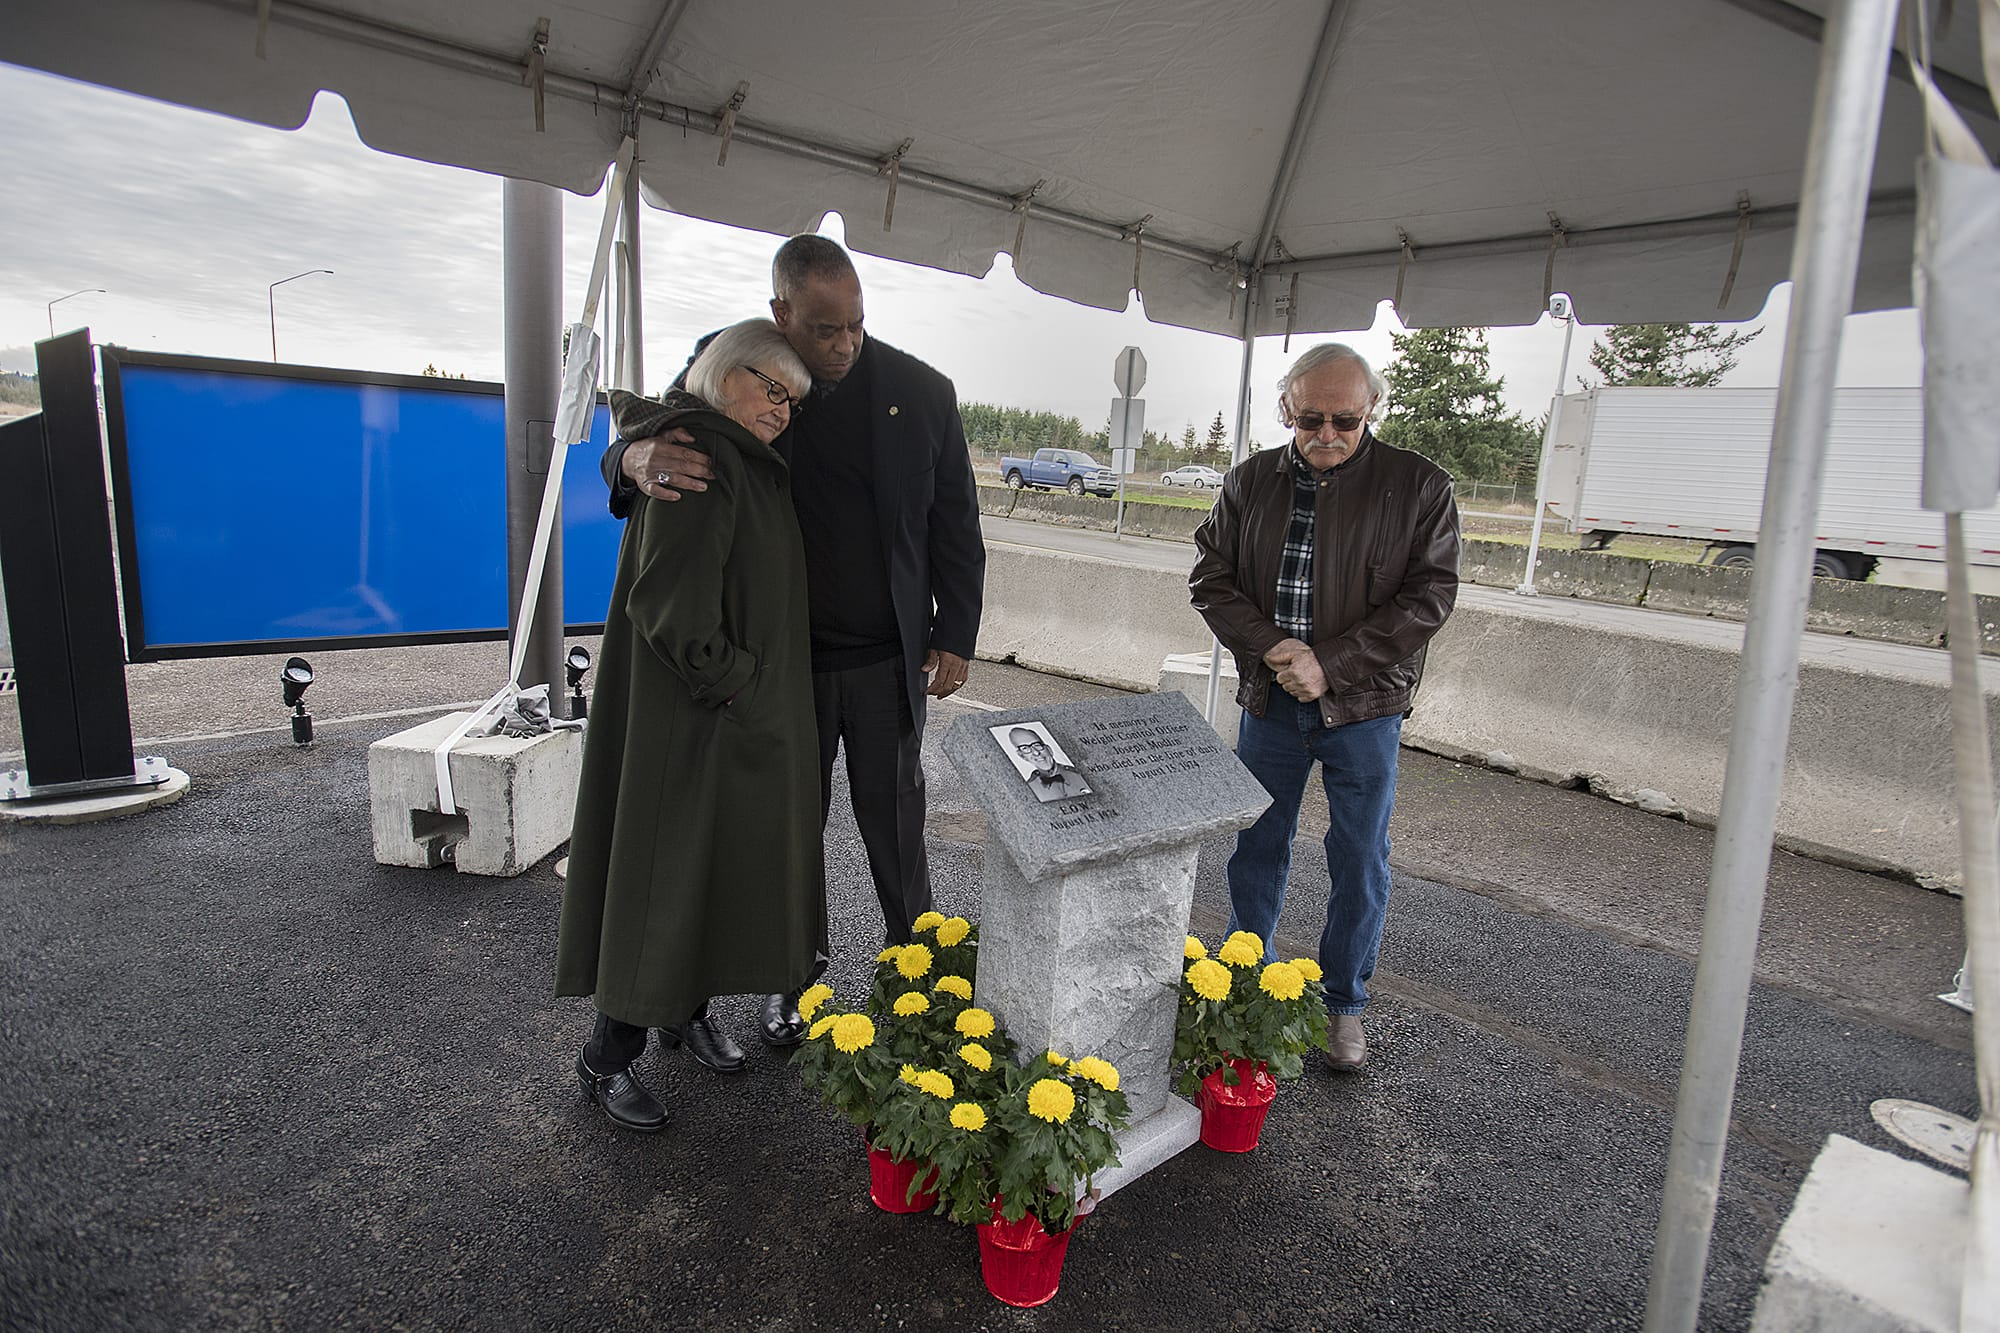 Louanne Mason, daughter of Weight Control Officer Joseph Modlin, from left, and John Batiste, Chief of Washington State Patrol, join Mason's husband, Doug, after unveiling a memorial plaque in honor of Modlin at the Ridgefield Port of Entry on Thursday morning, Jan. 30, 2020. Officer Modlin died in the line of duty on August 15, 1974 when he was struck by a logging truck. The Washington State Patrol Motor Carrier Safety Division also hosted a grand opening and dedication of the newly built Ridgefield Port of Entry during the event. (Amanda Cowan/The Columbian)